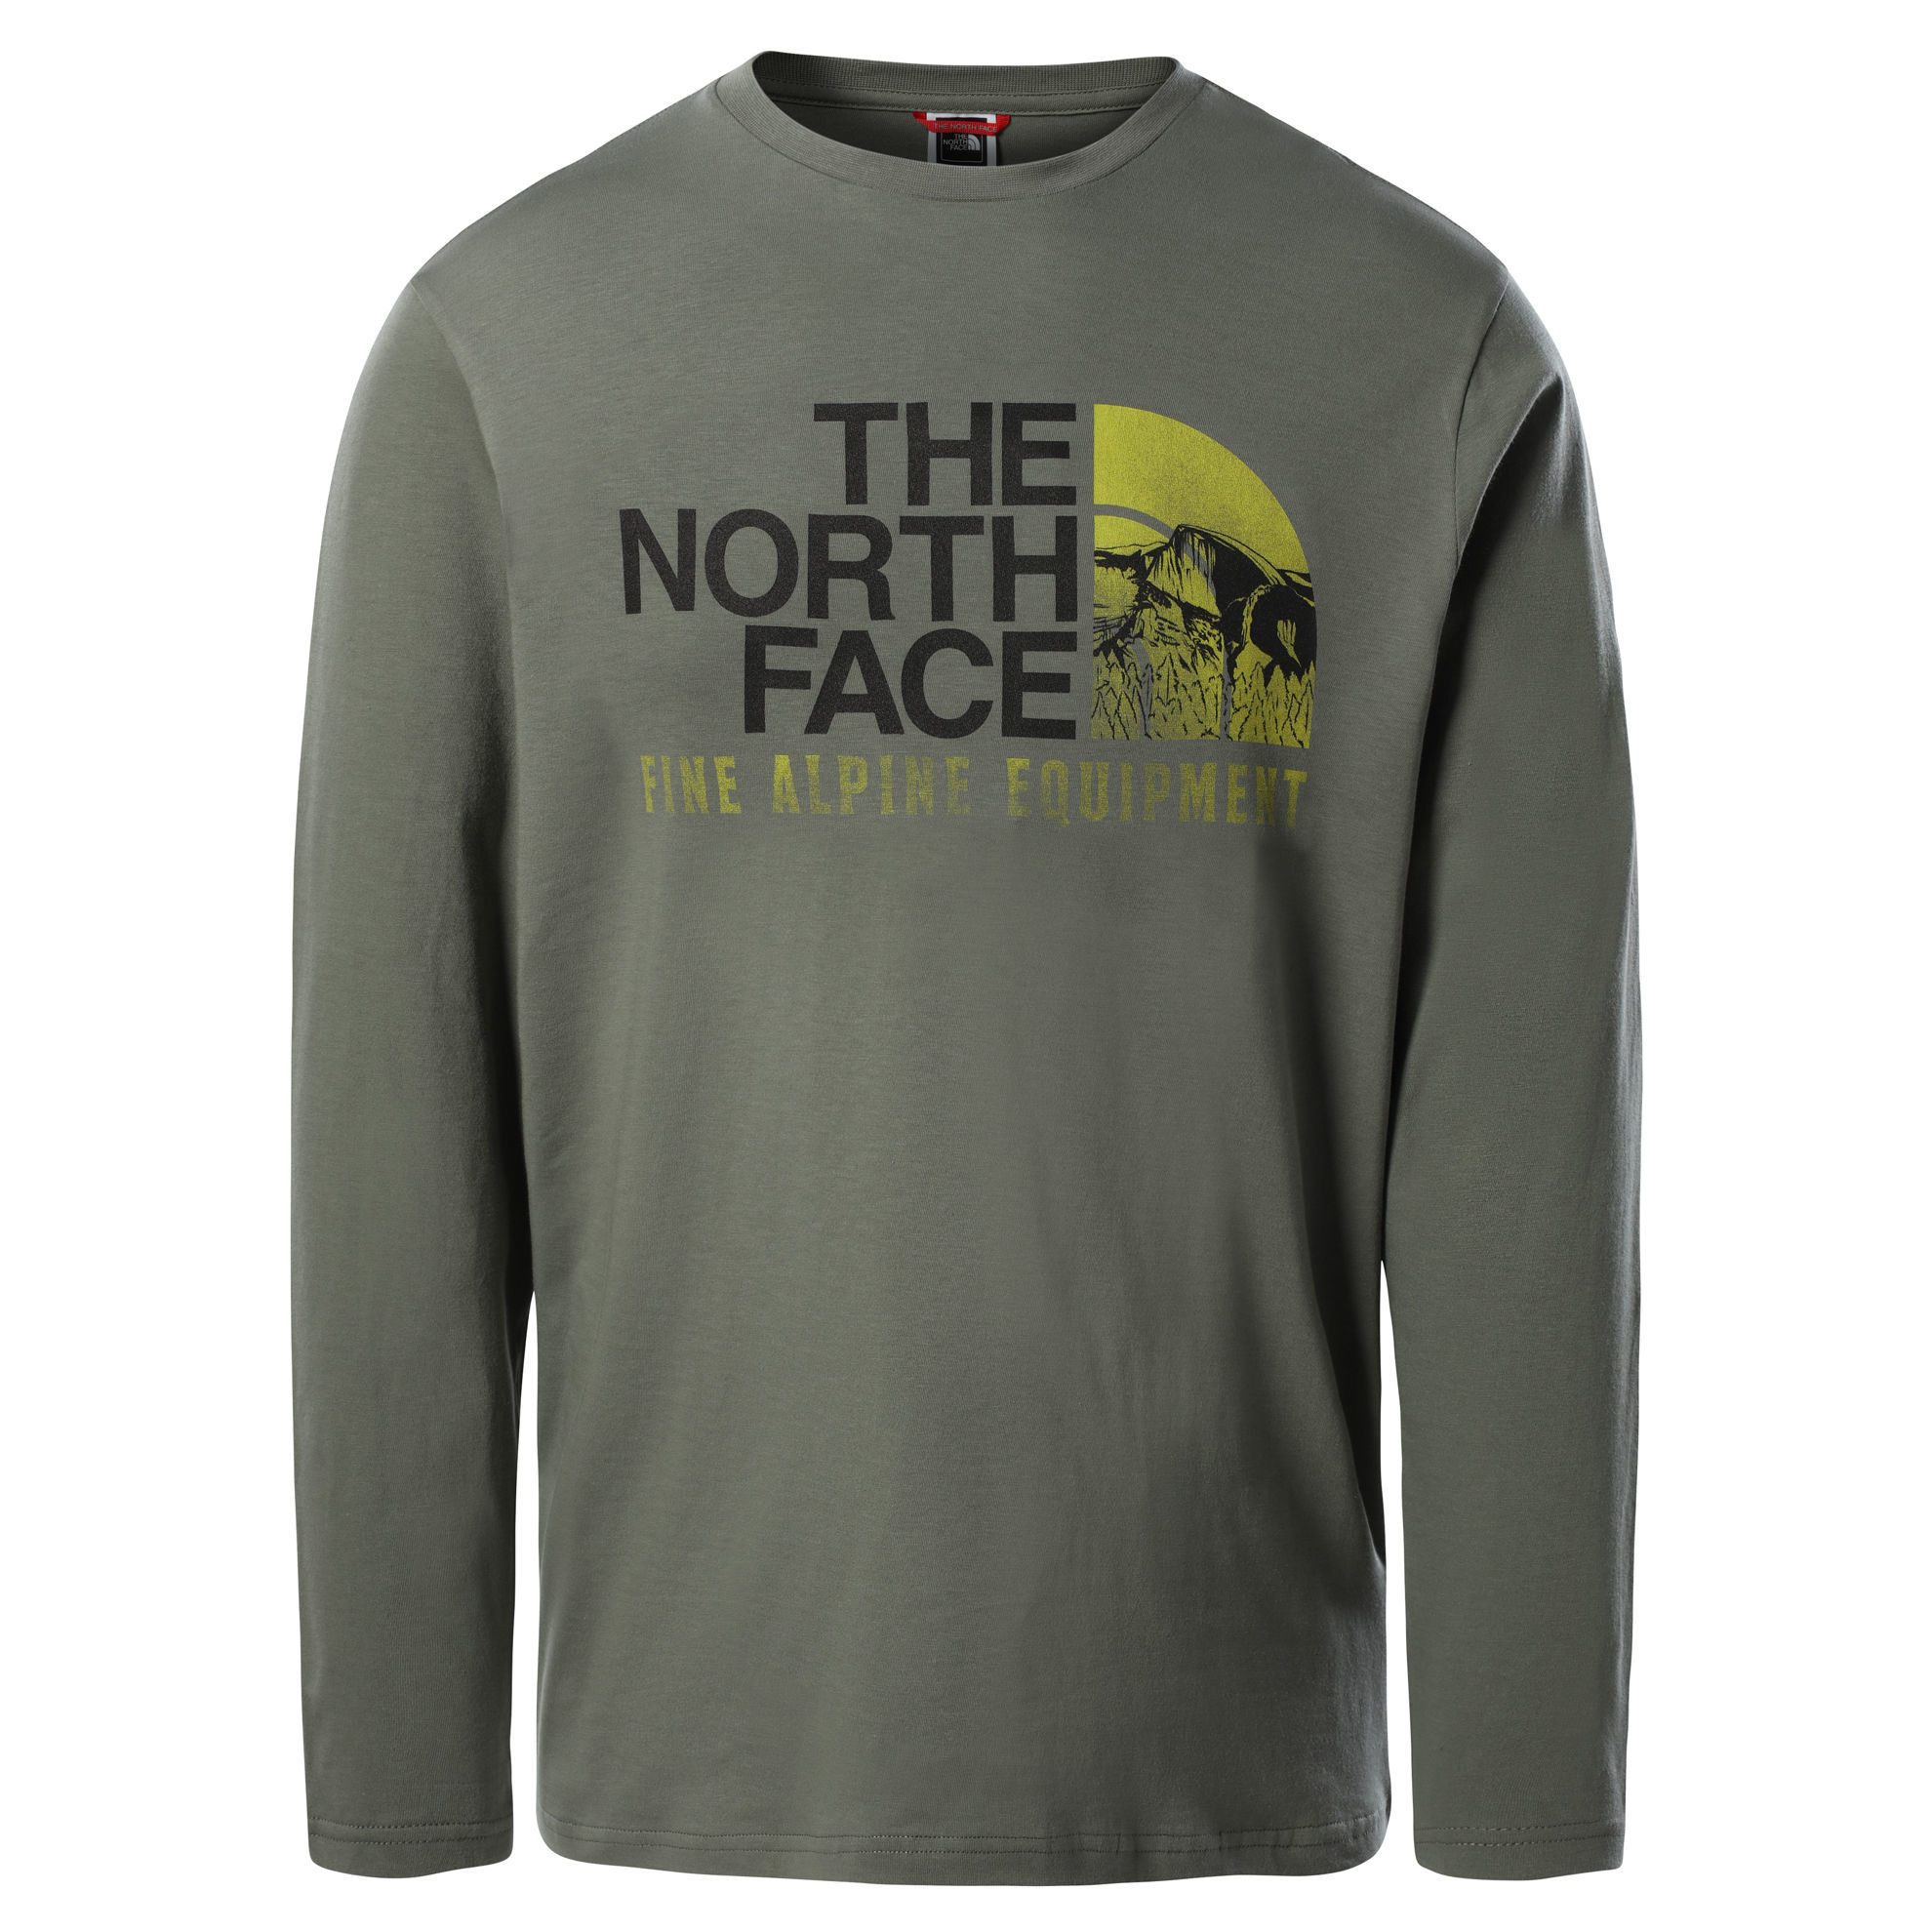 Bilde av The North Face M L/S Image Ideals Tee, Agave Green